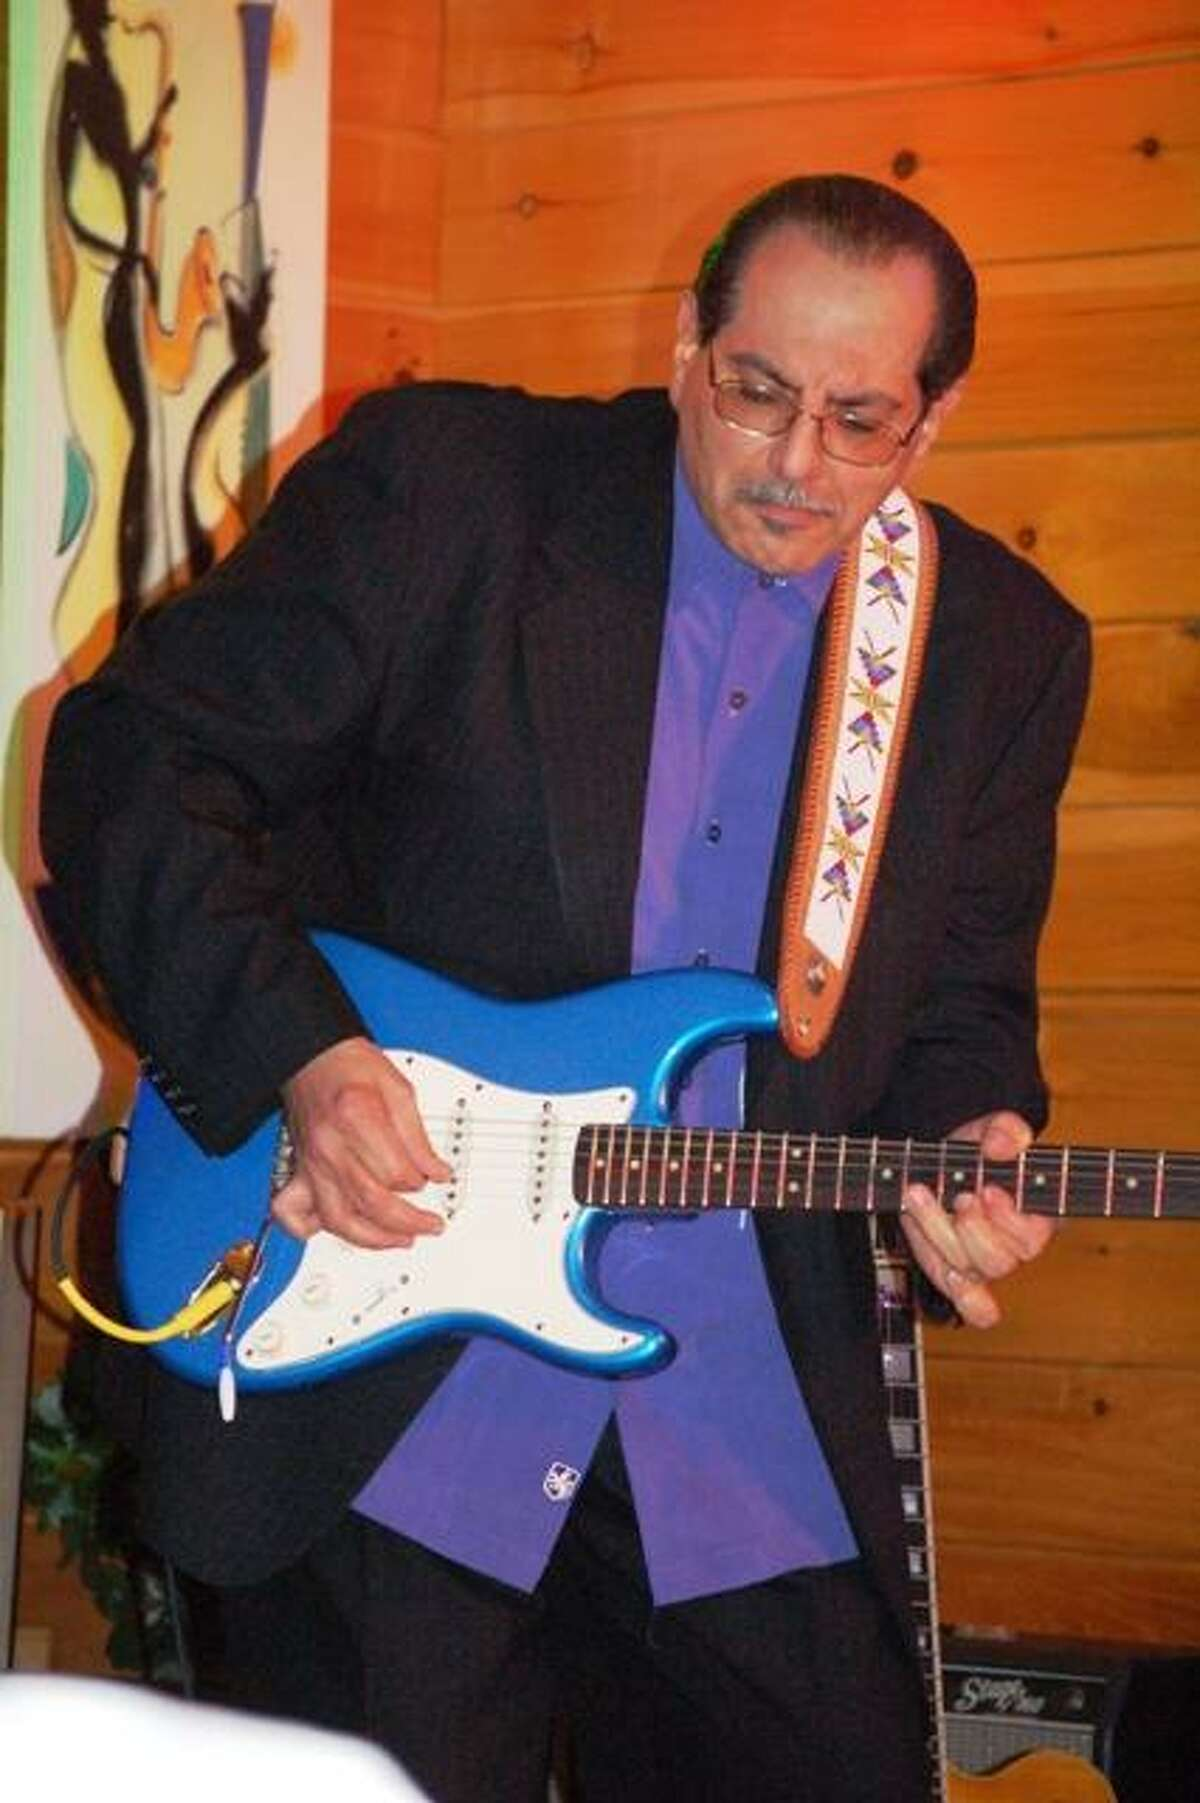 Paul Gabriel & his Blues Band will open the Blues Blizzard.